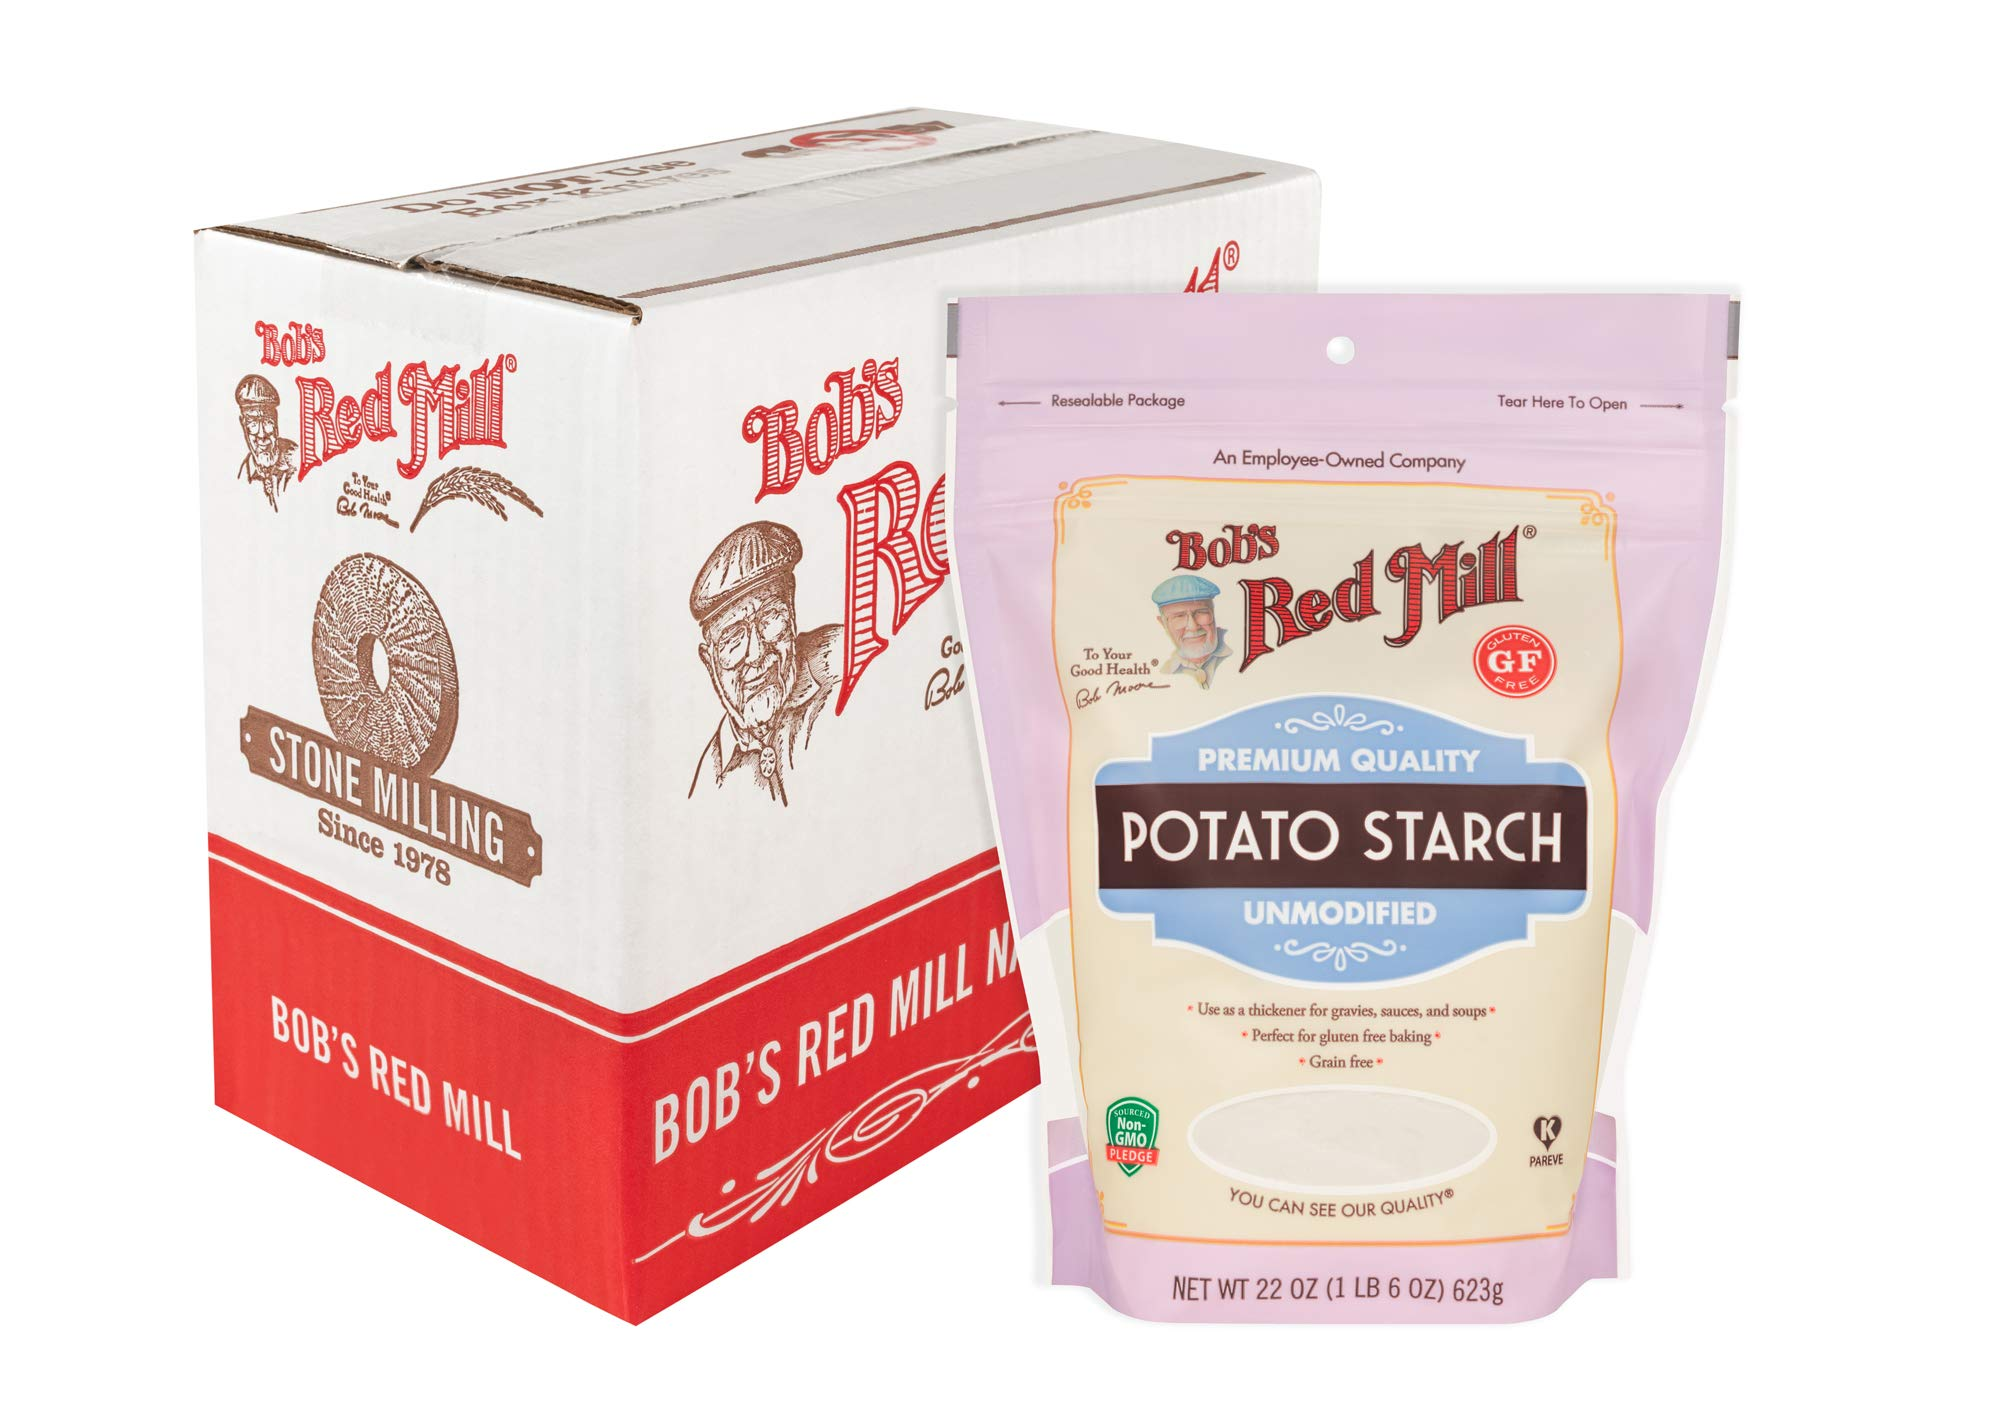 Bob's Red Mill - Resealable Potato Starch, 22 Oz (4 Pack)